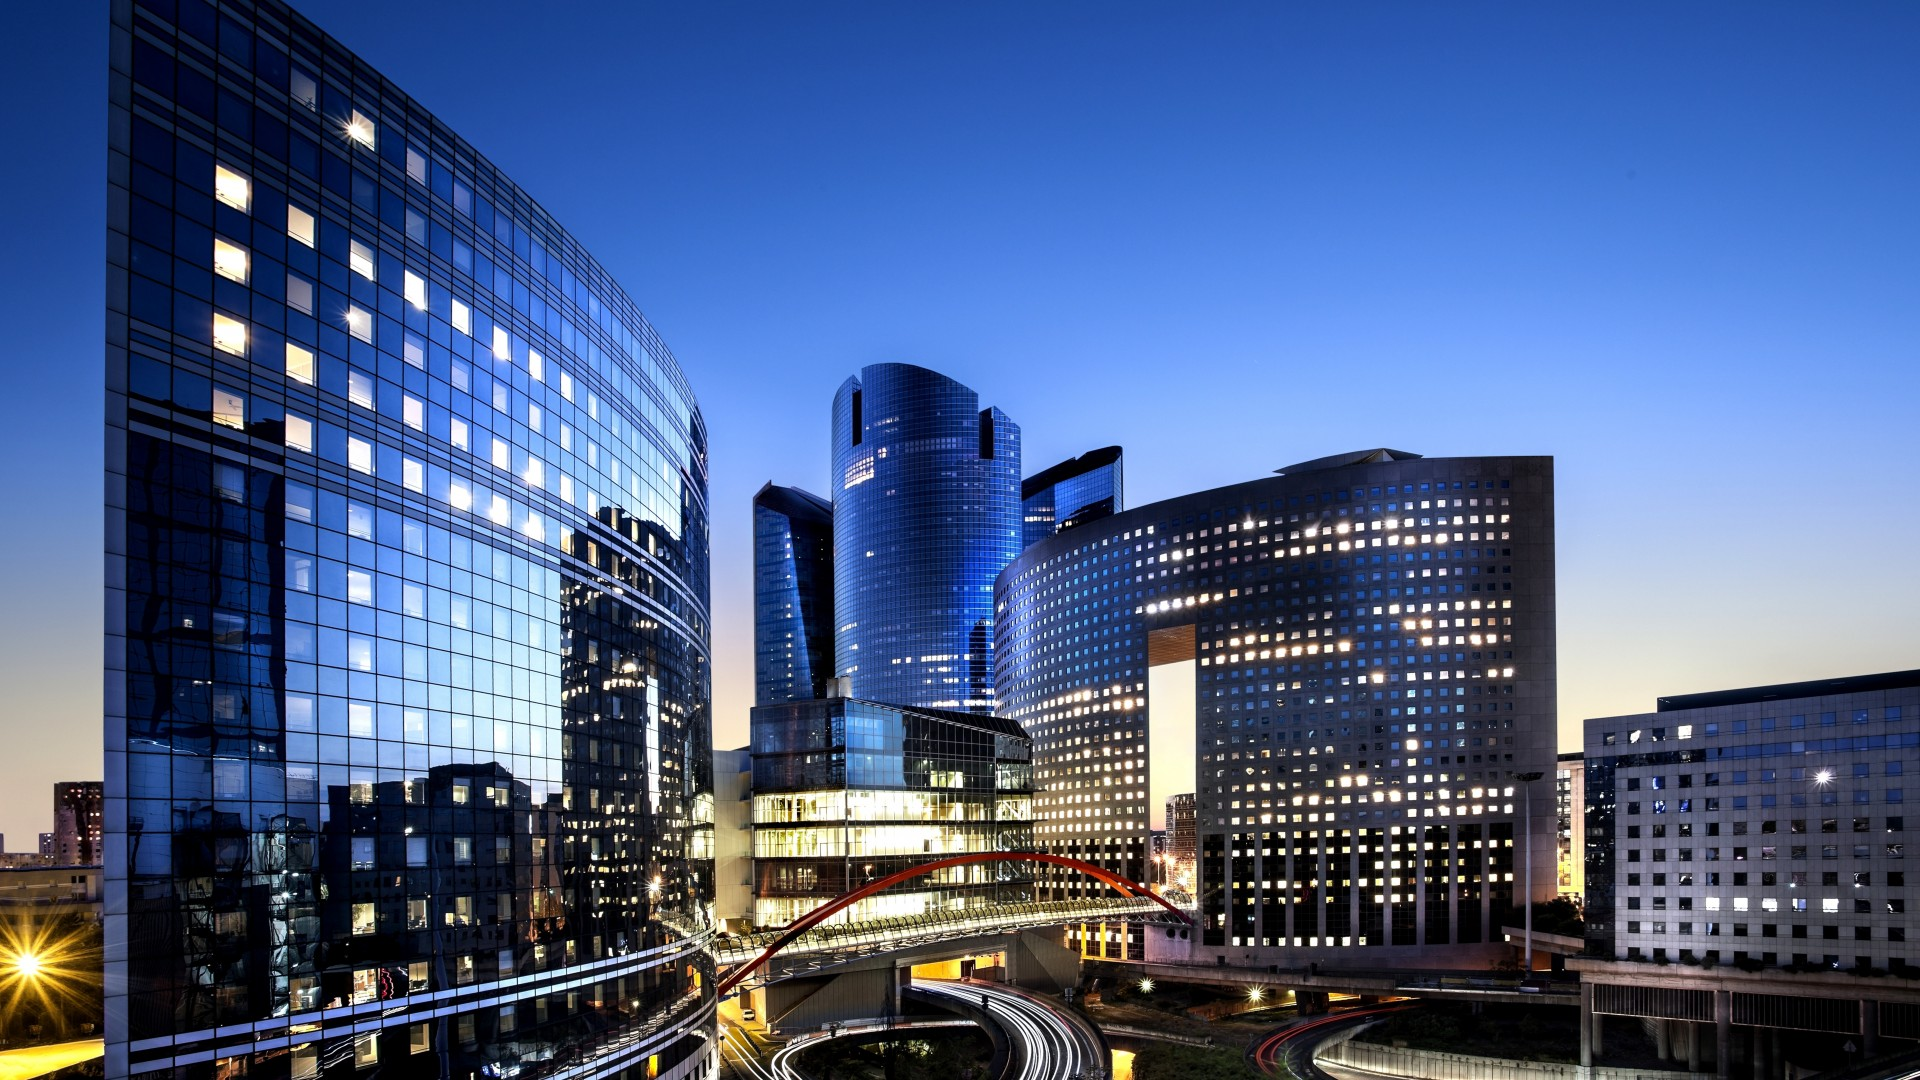 wallpaper france paris defense city night dusk buildings skyscrapers travel booking. Black Bedroom Furniture Sets. Home Design Ideas